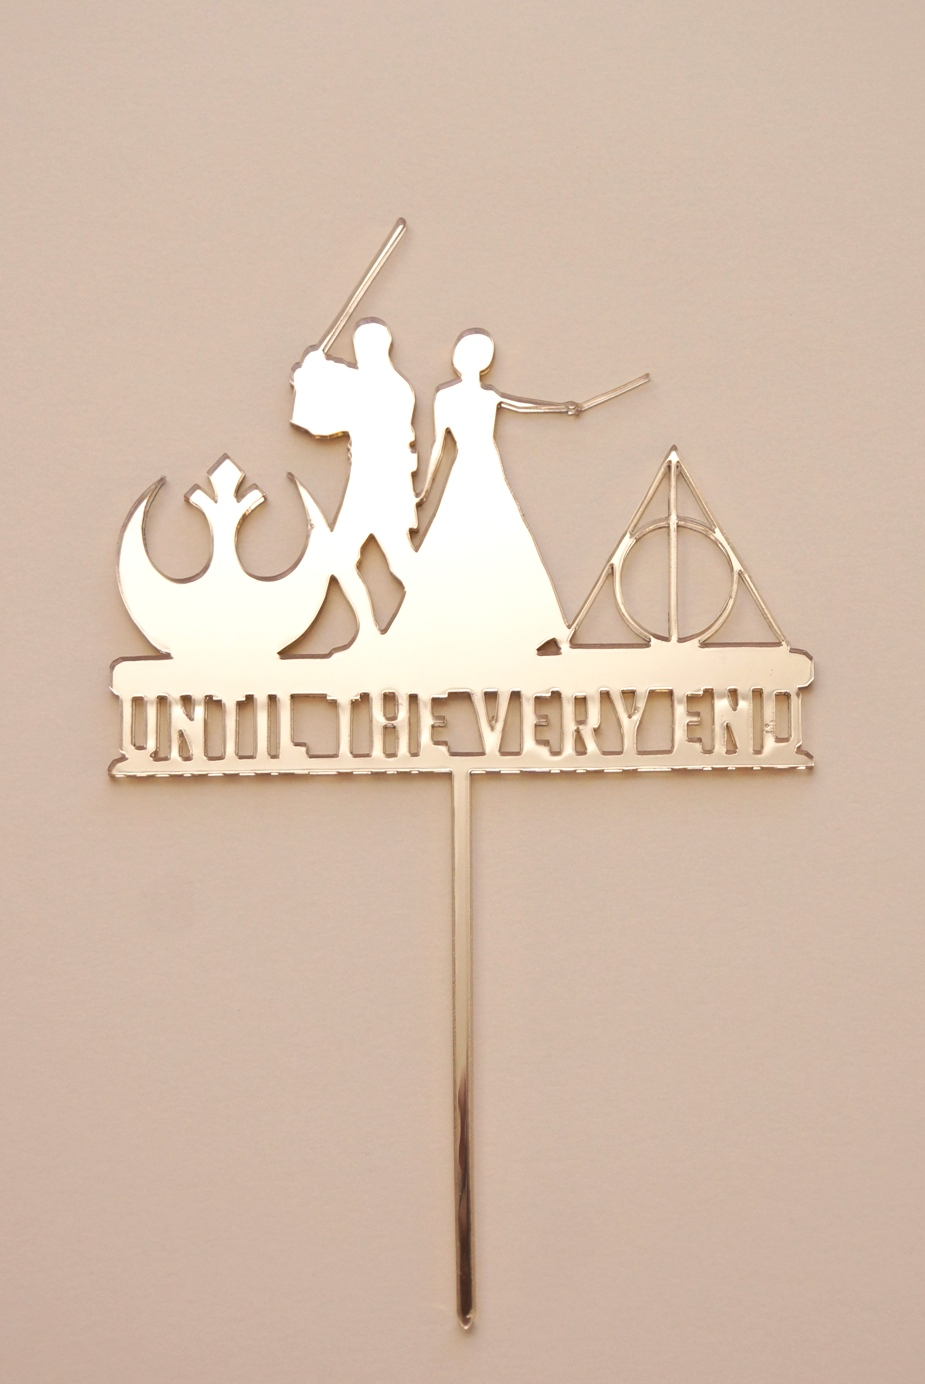 Star Wars & Harry Potter Topper 2